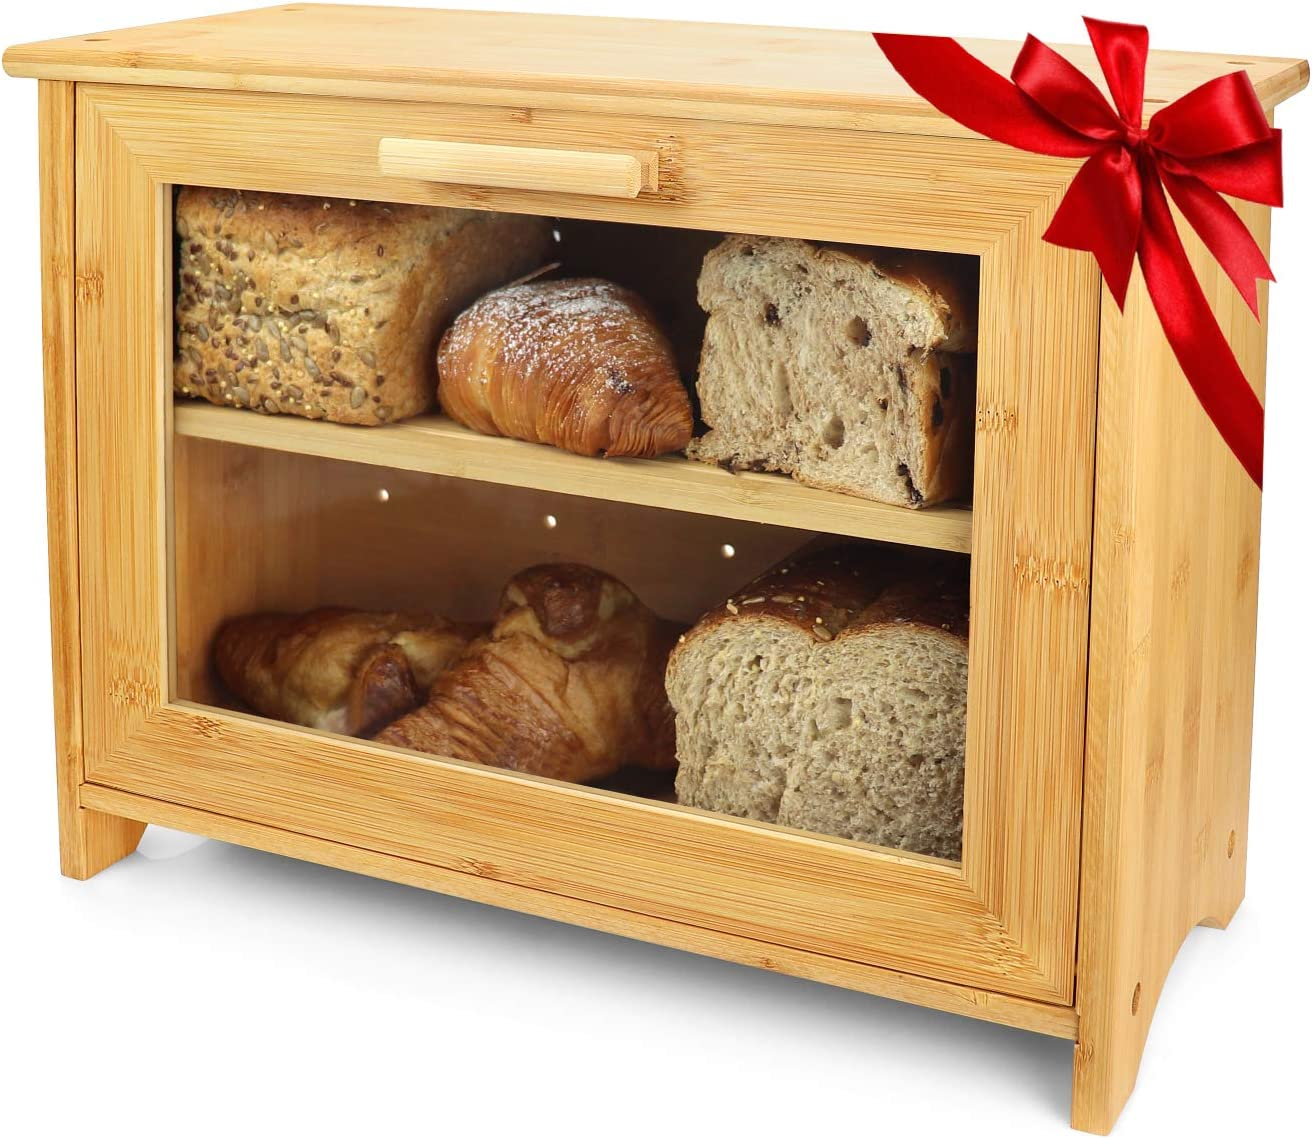 PRISTINE BAMBOO Bread Box - Baker Designed, Freshness for Days - 2 Layer Large Breadbox for Homemade Bread, Bread Bin for Kitchen Countertop, Double Bread Storage Container (assembly required)